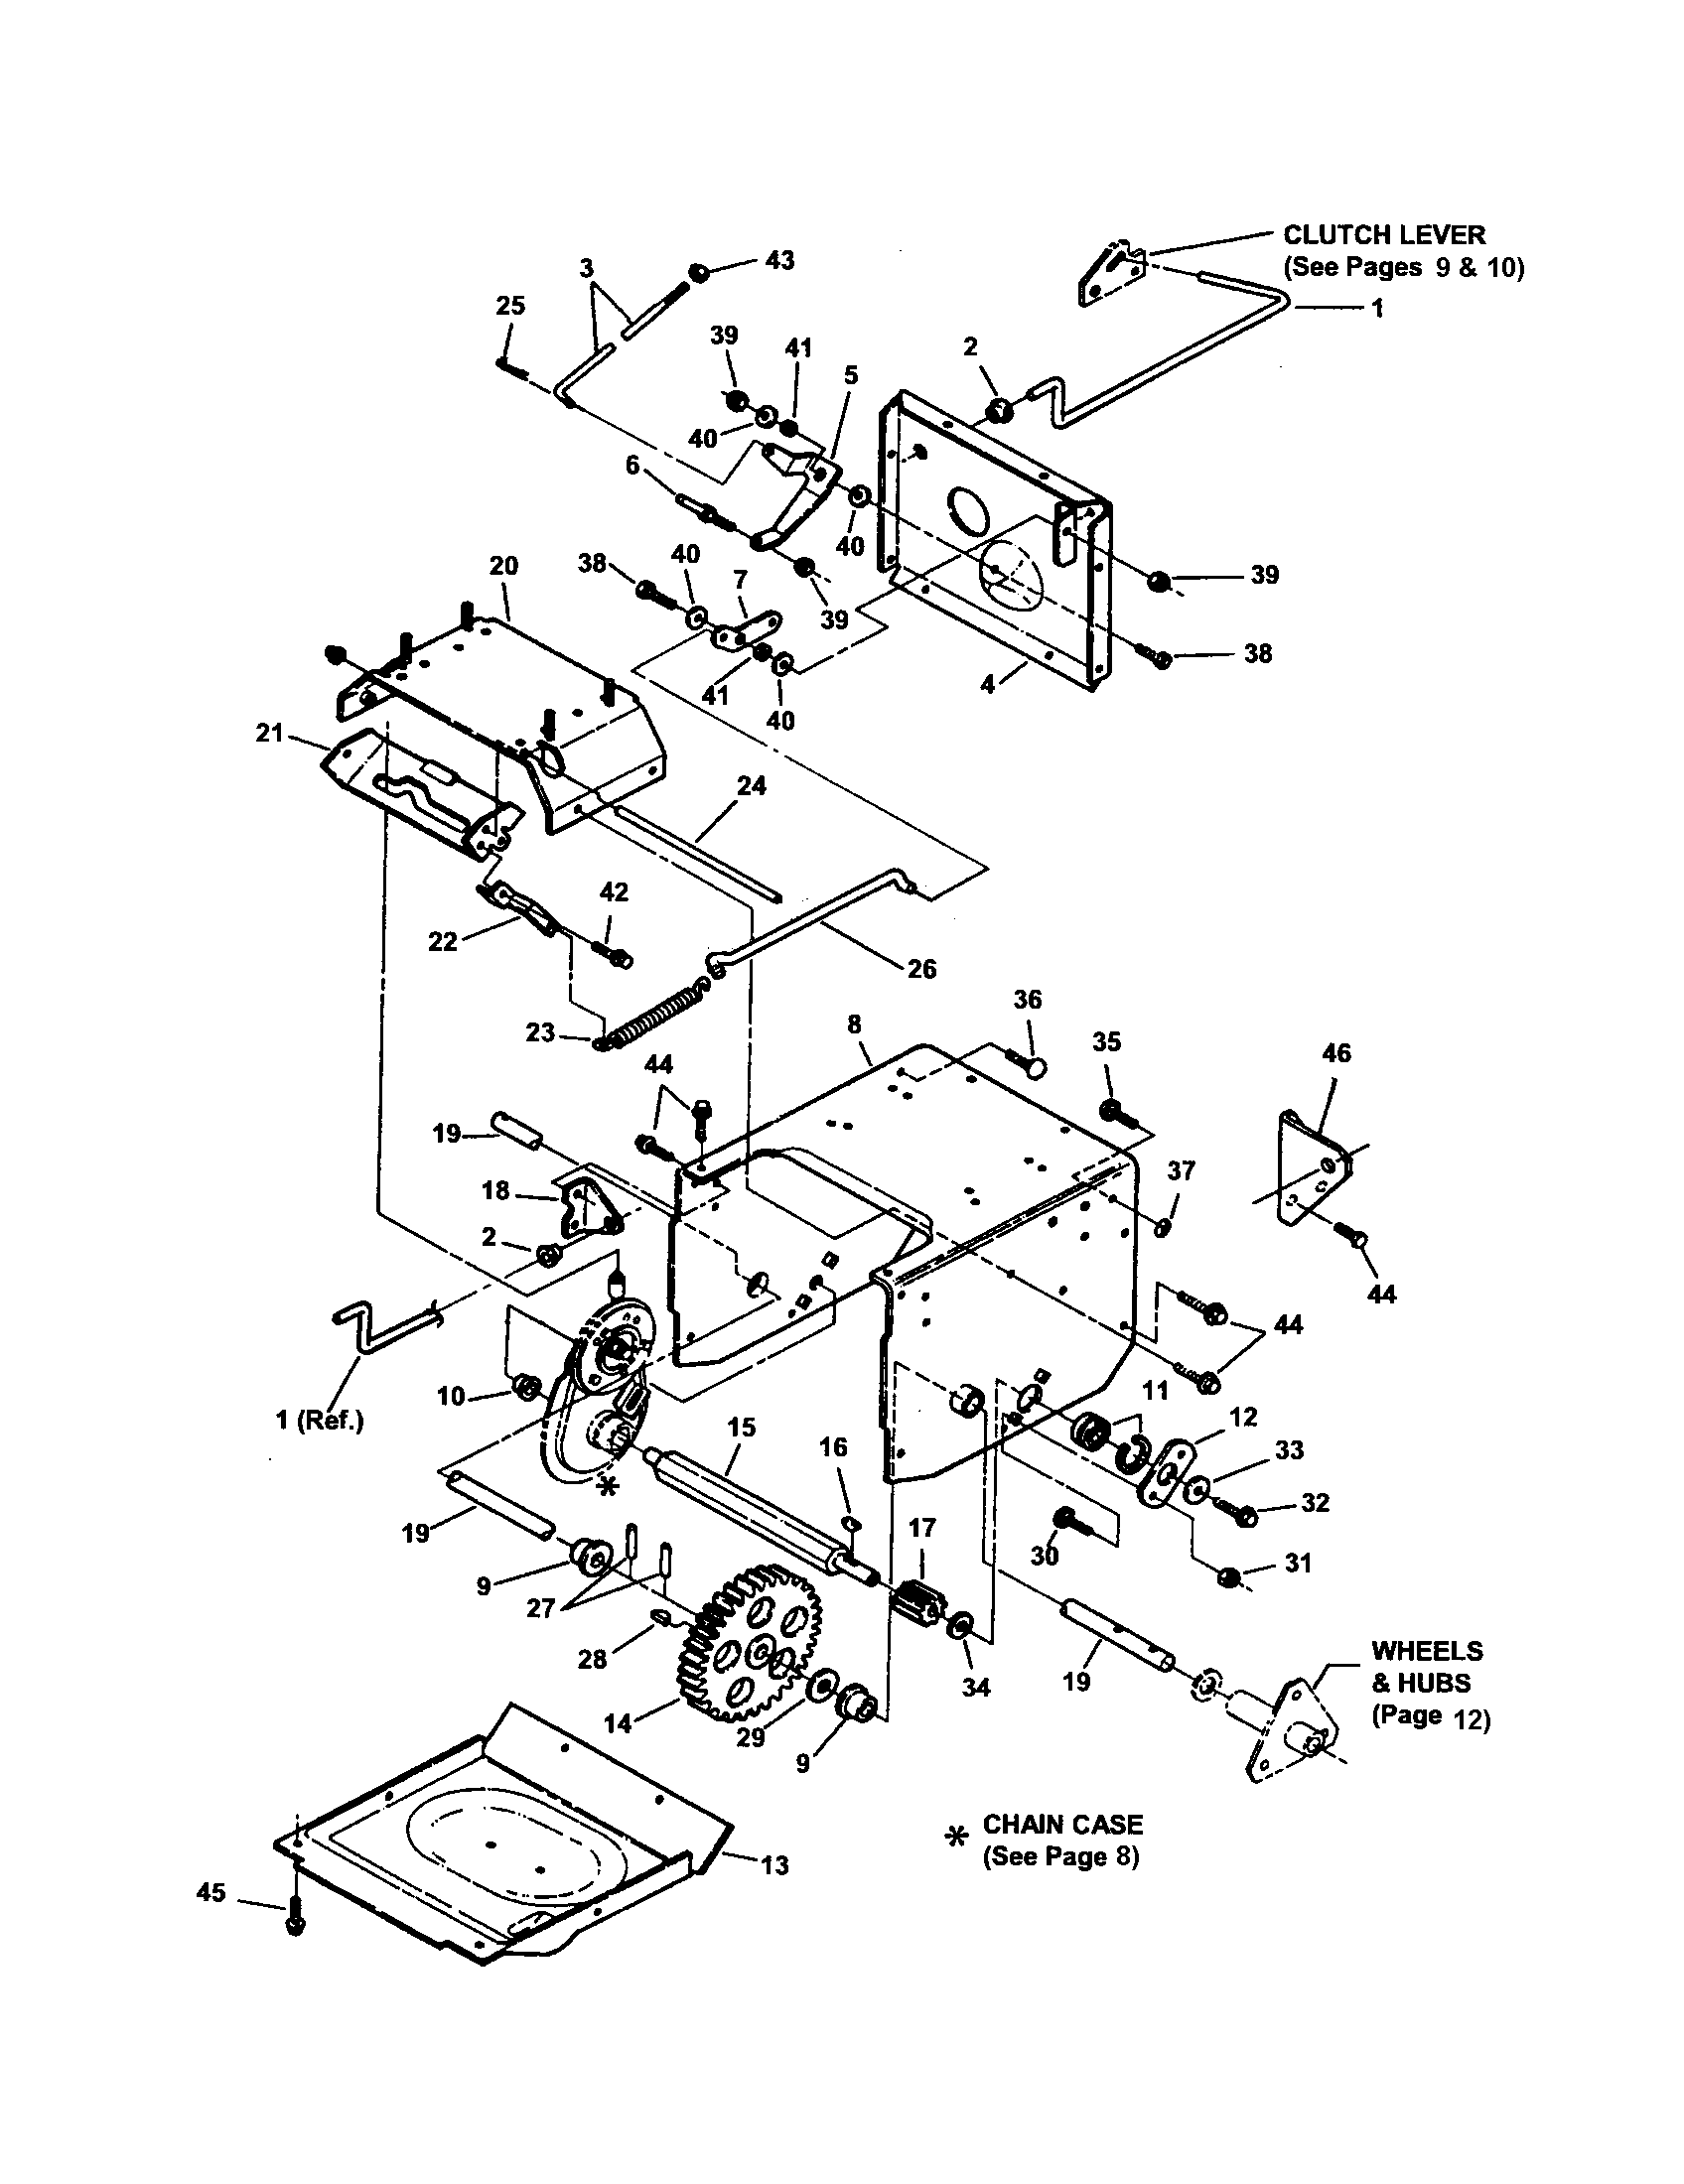 FRAME, TRACTION DRIVE Diagram & Parts List for Model 8245